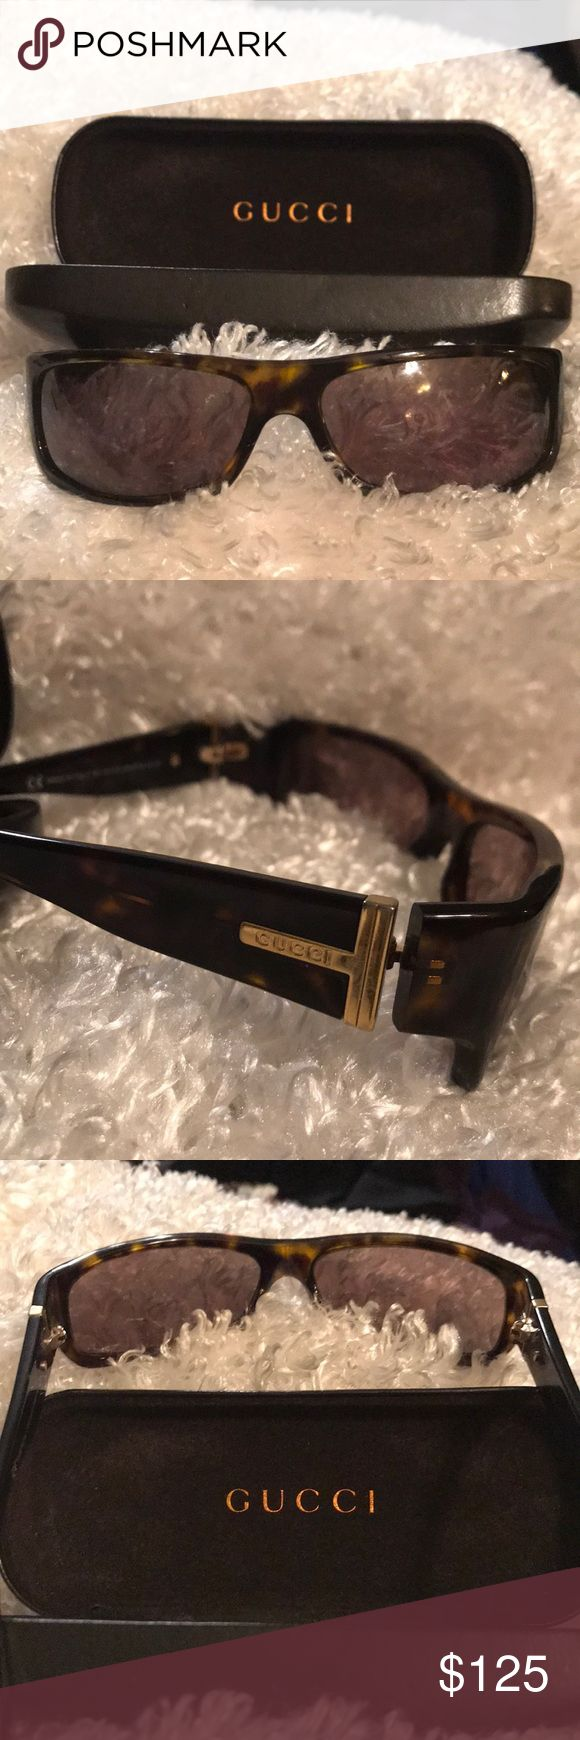 Gucci Sunglasses Tortoise Frames This listing is for a pair of Gucci GG 1545/S tortoise women's designer fashion sunglass / eyeglass frames. They are in great PreOwned condition with no Issues on lens or frames, Gold tone trim and Gucci case is included with purchase. Please see photos for additional details. Thanks and Happy EveryThing Gucci Accessories Sunglasses